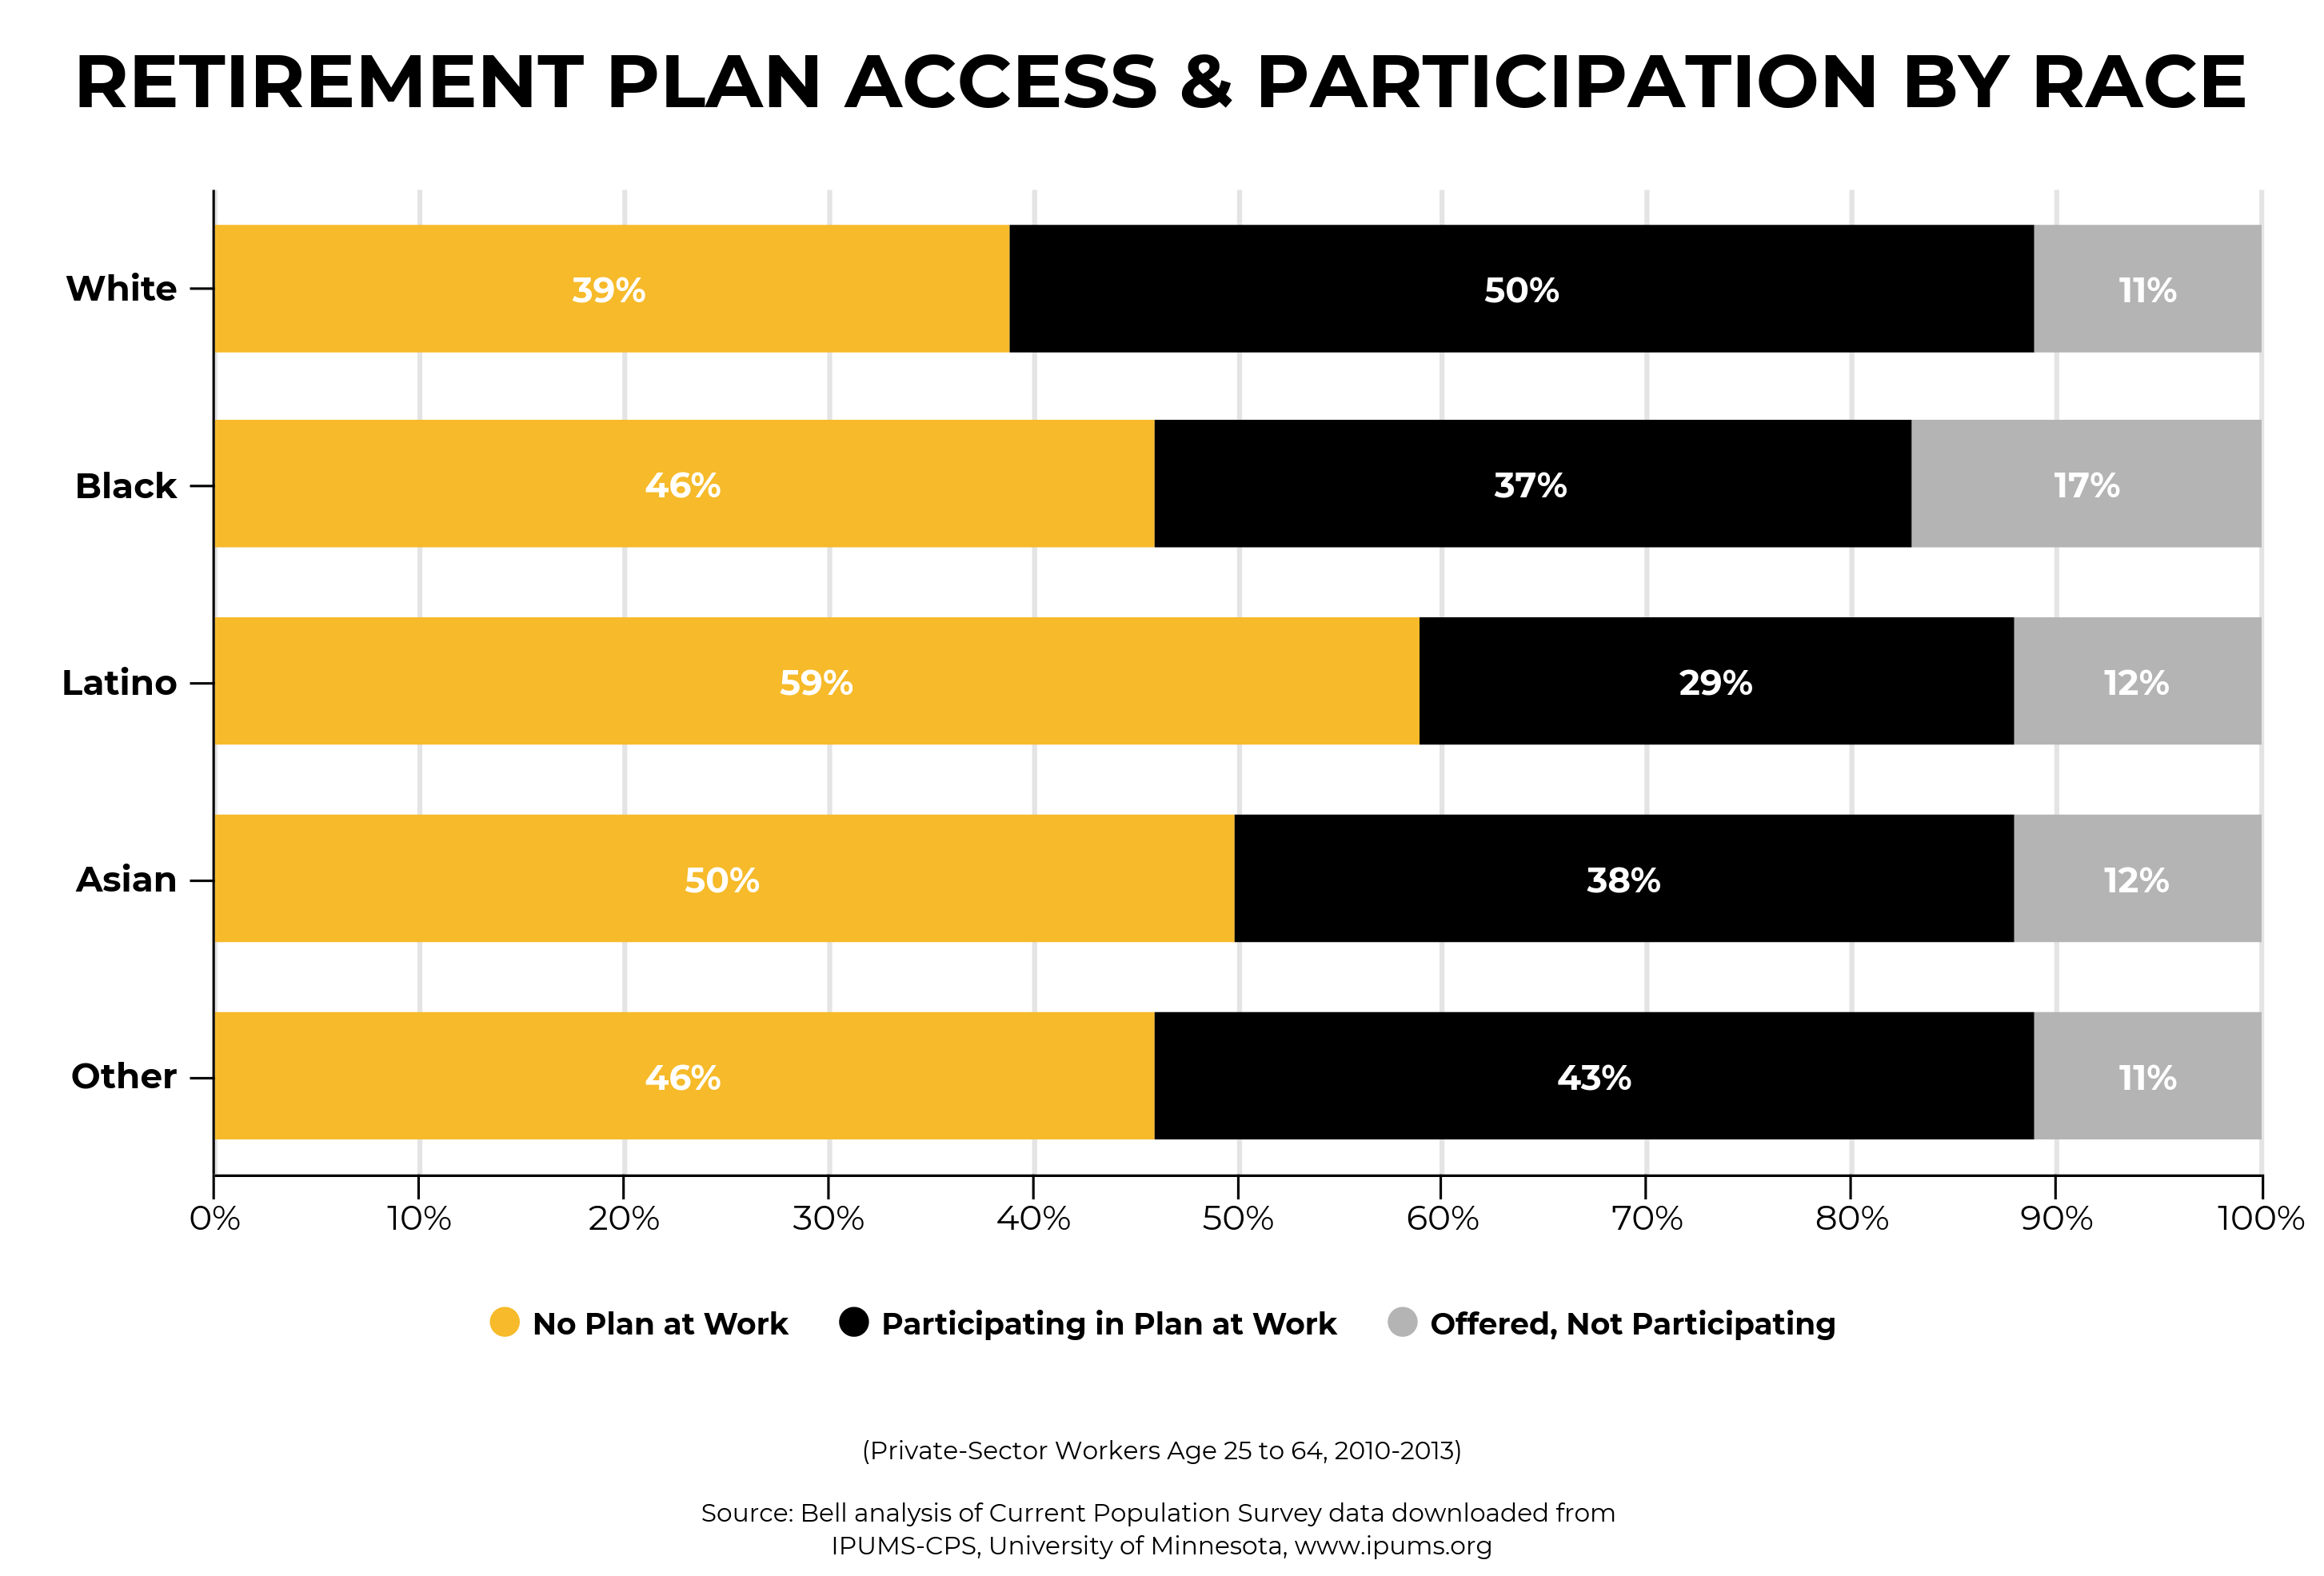 Bar graph illustrating workplace retirement plan access and participation in Colorado, by race.